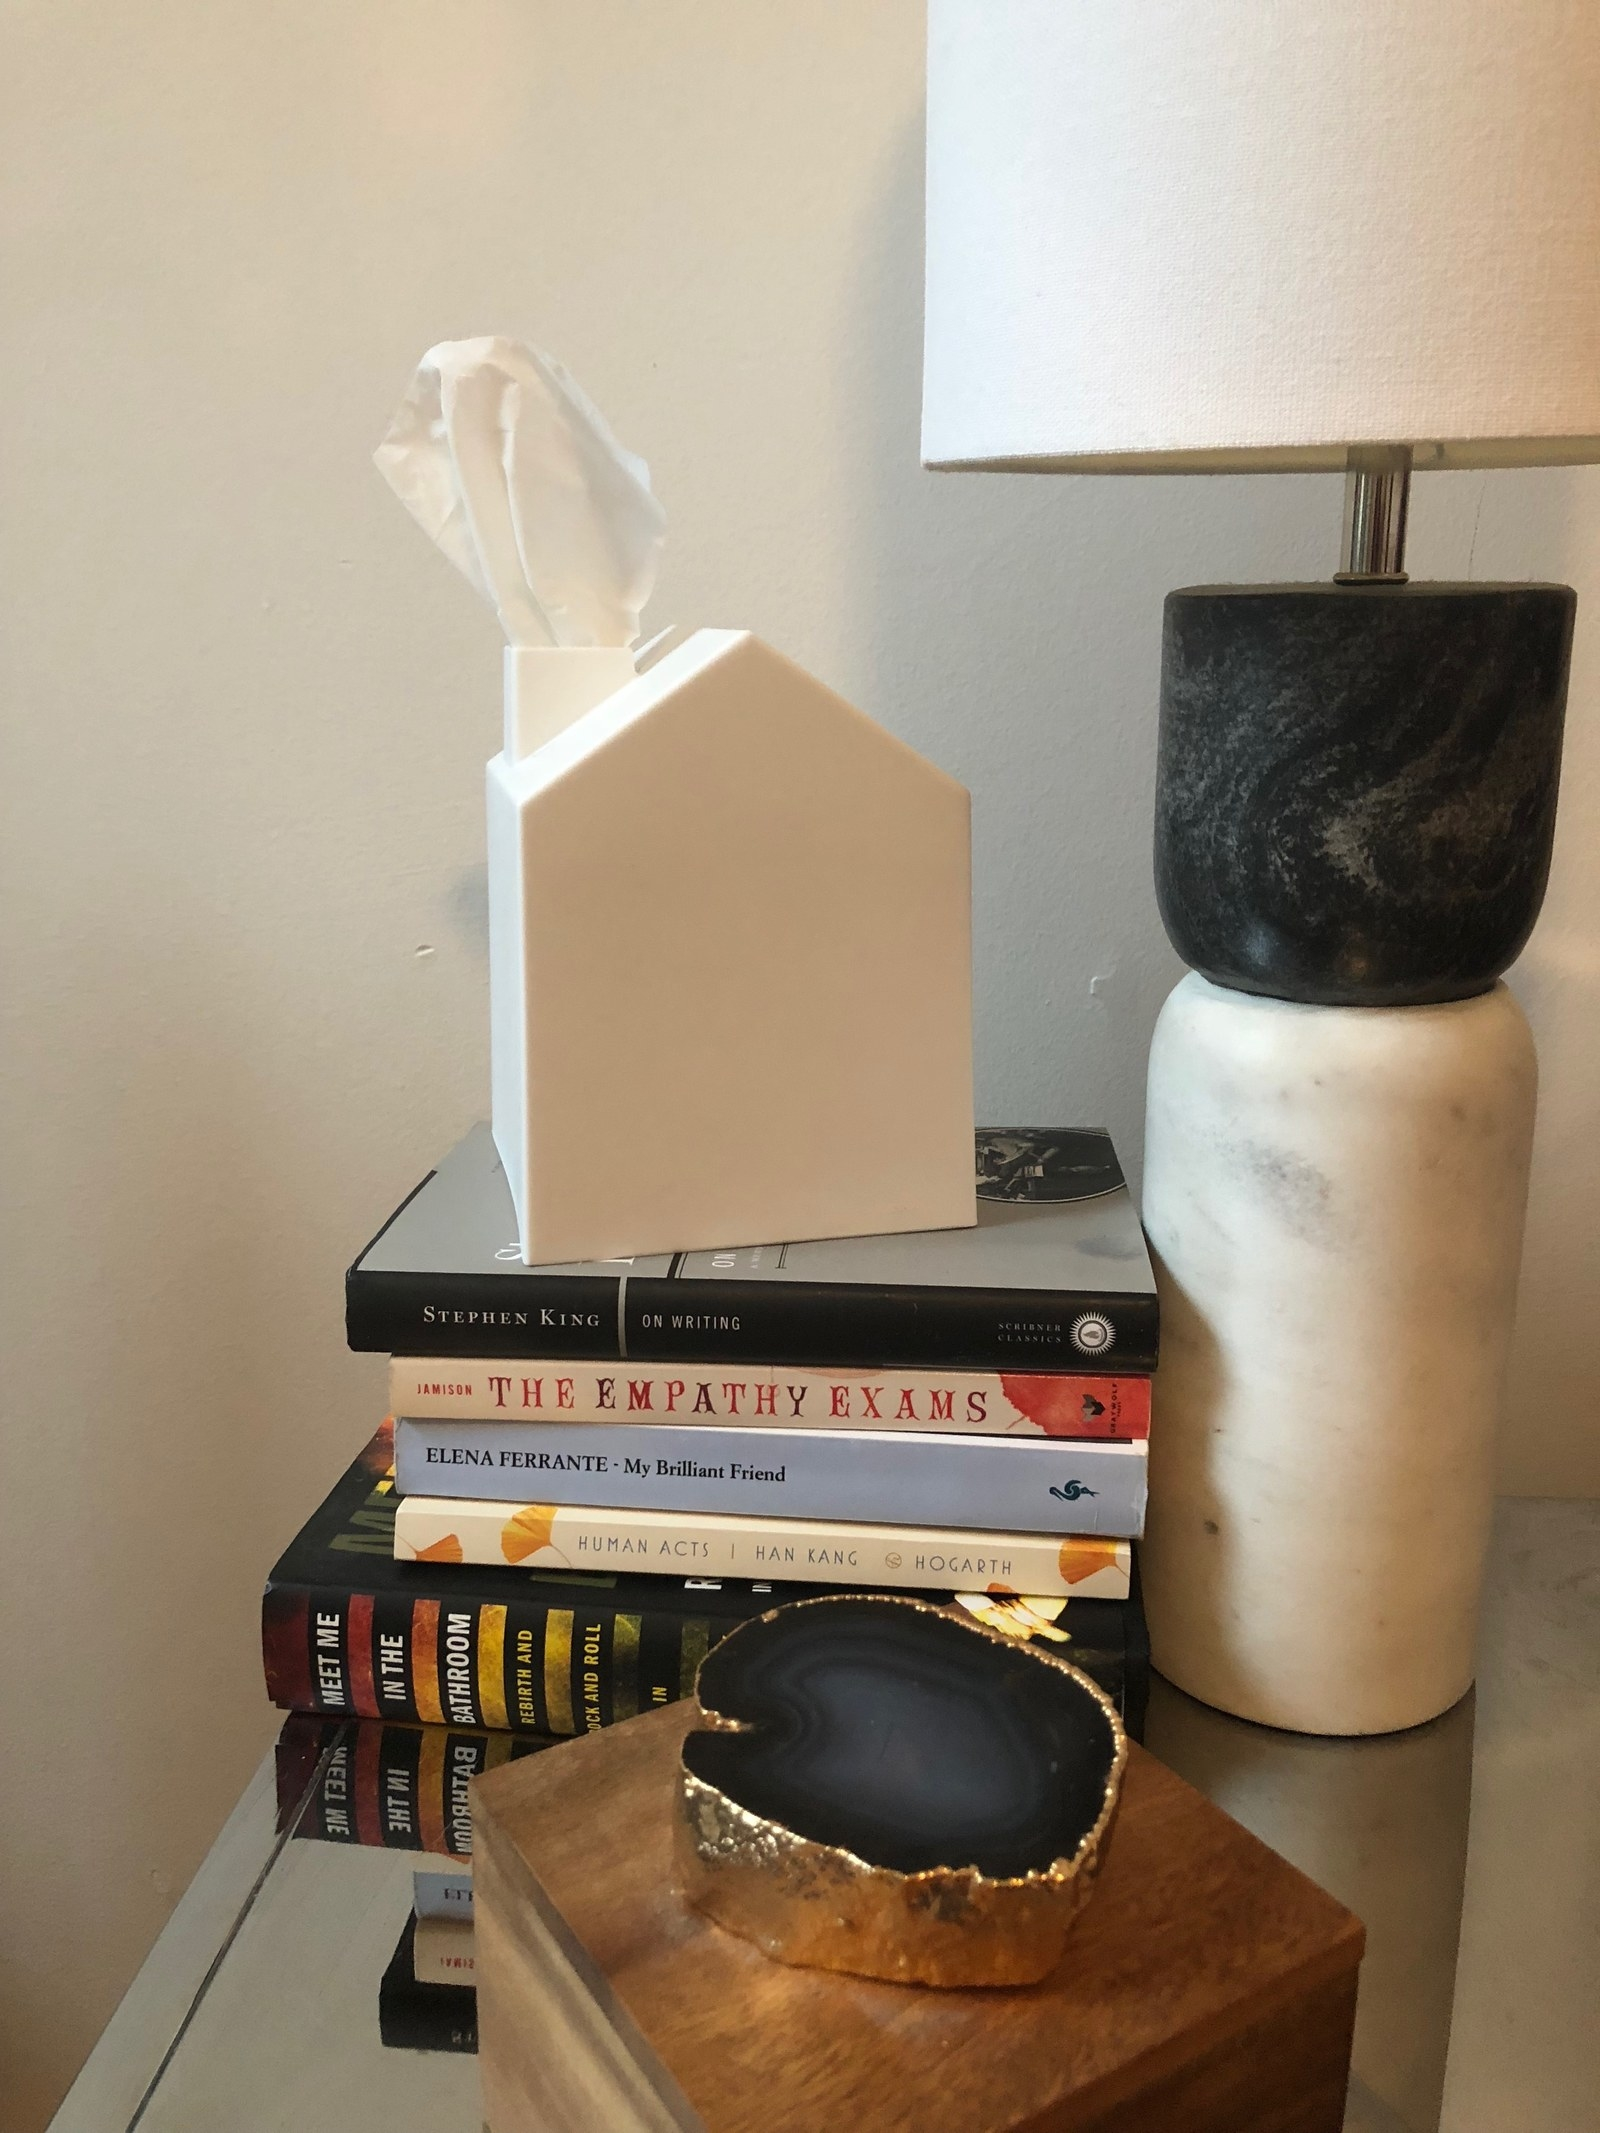 The tissue box covers sitting on a stack of books